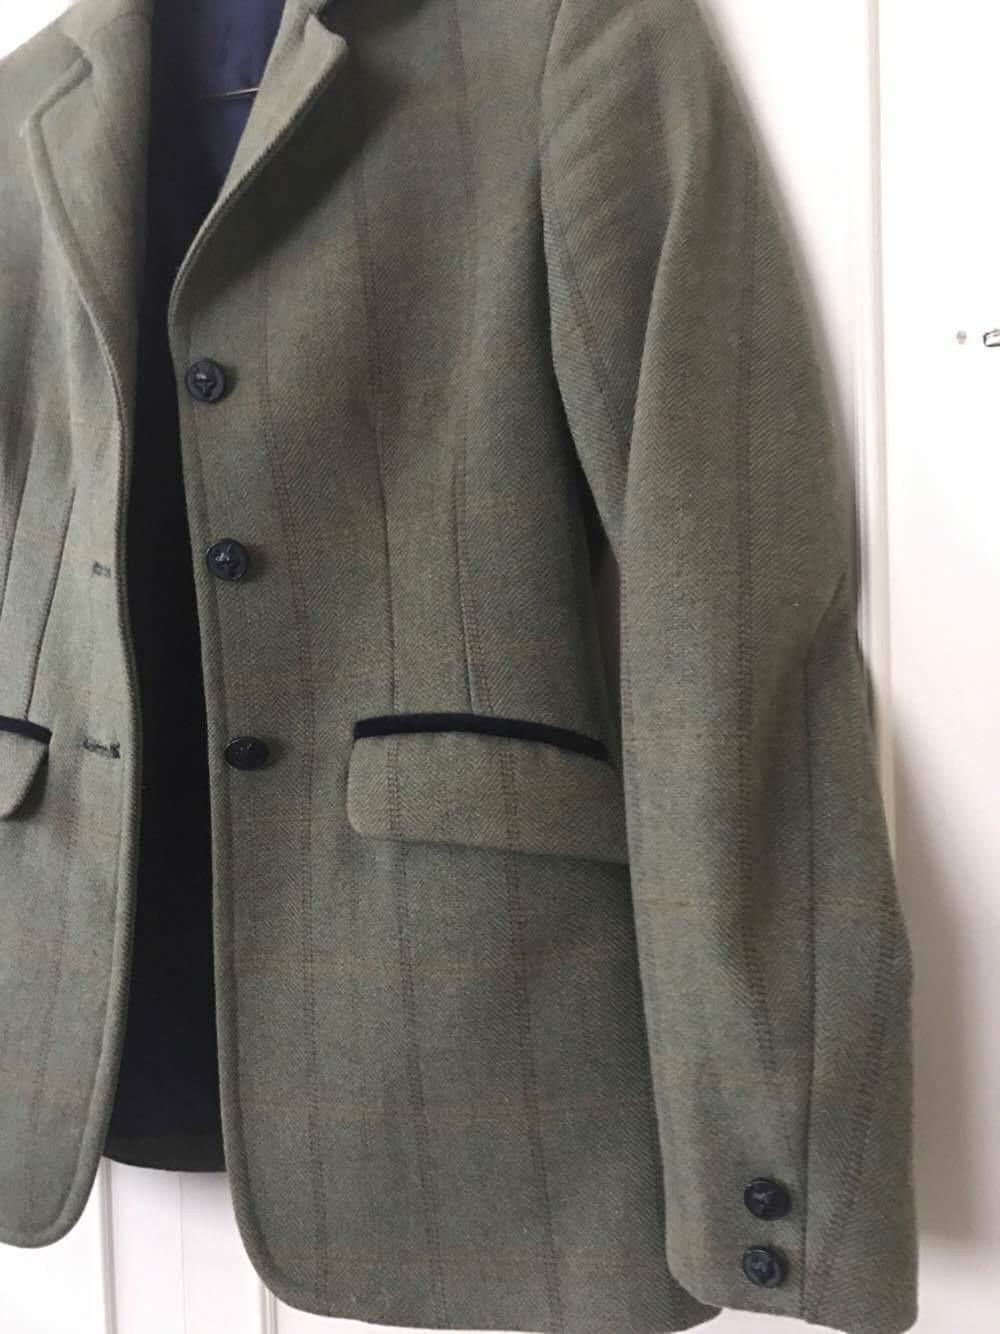 Tweed riding jacket